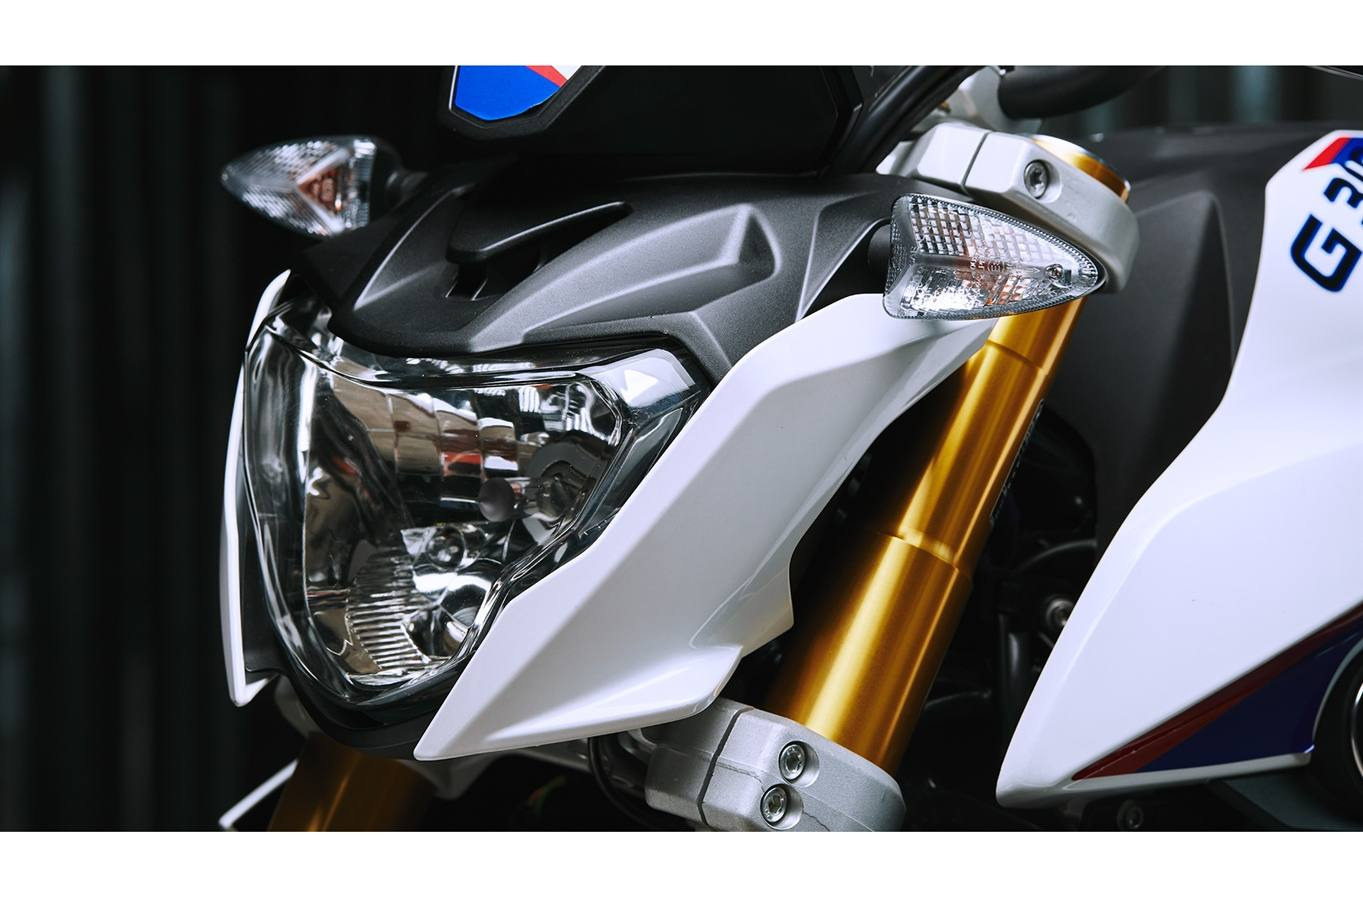 2020 Bmw G 310 R Pearl White Metallic For Sale In Falmouth Me Street Cycles Falmouth Me 207 781 4763